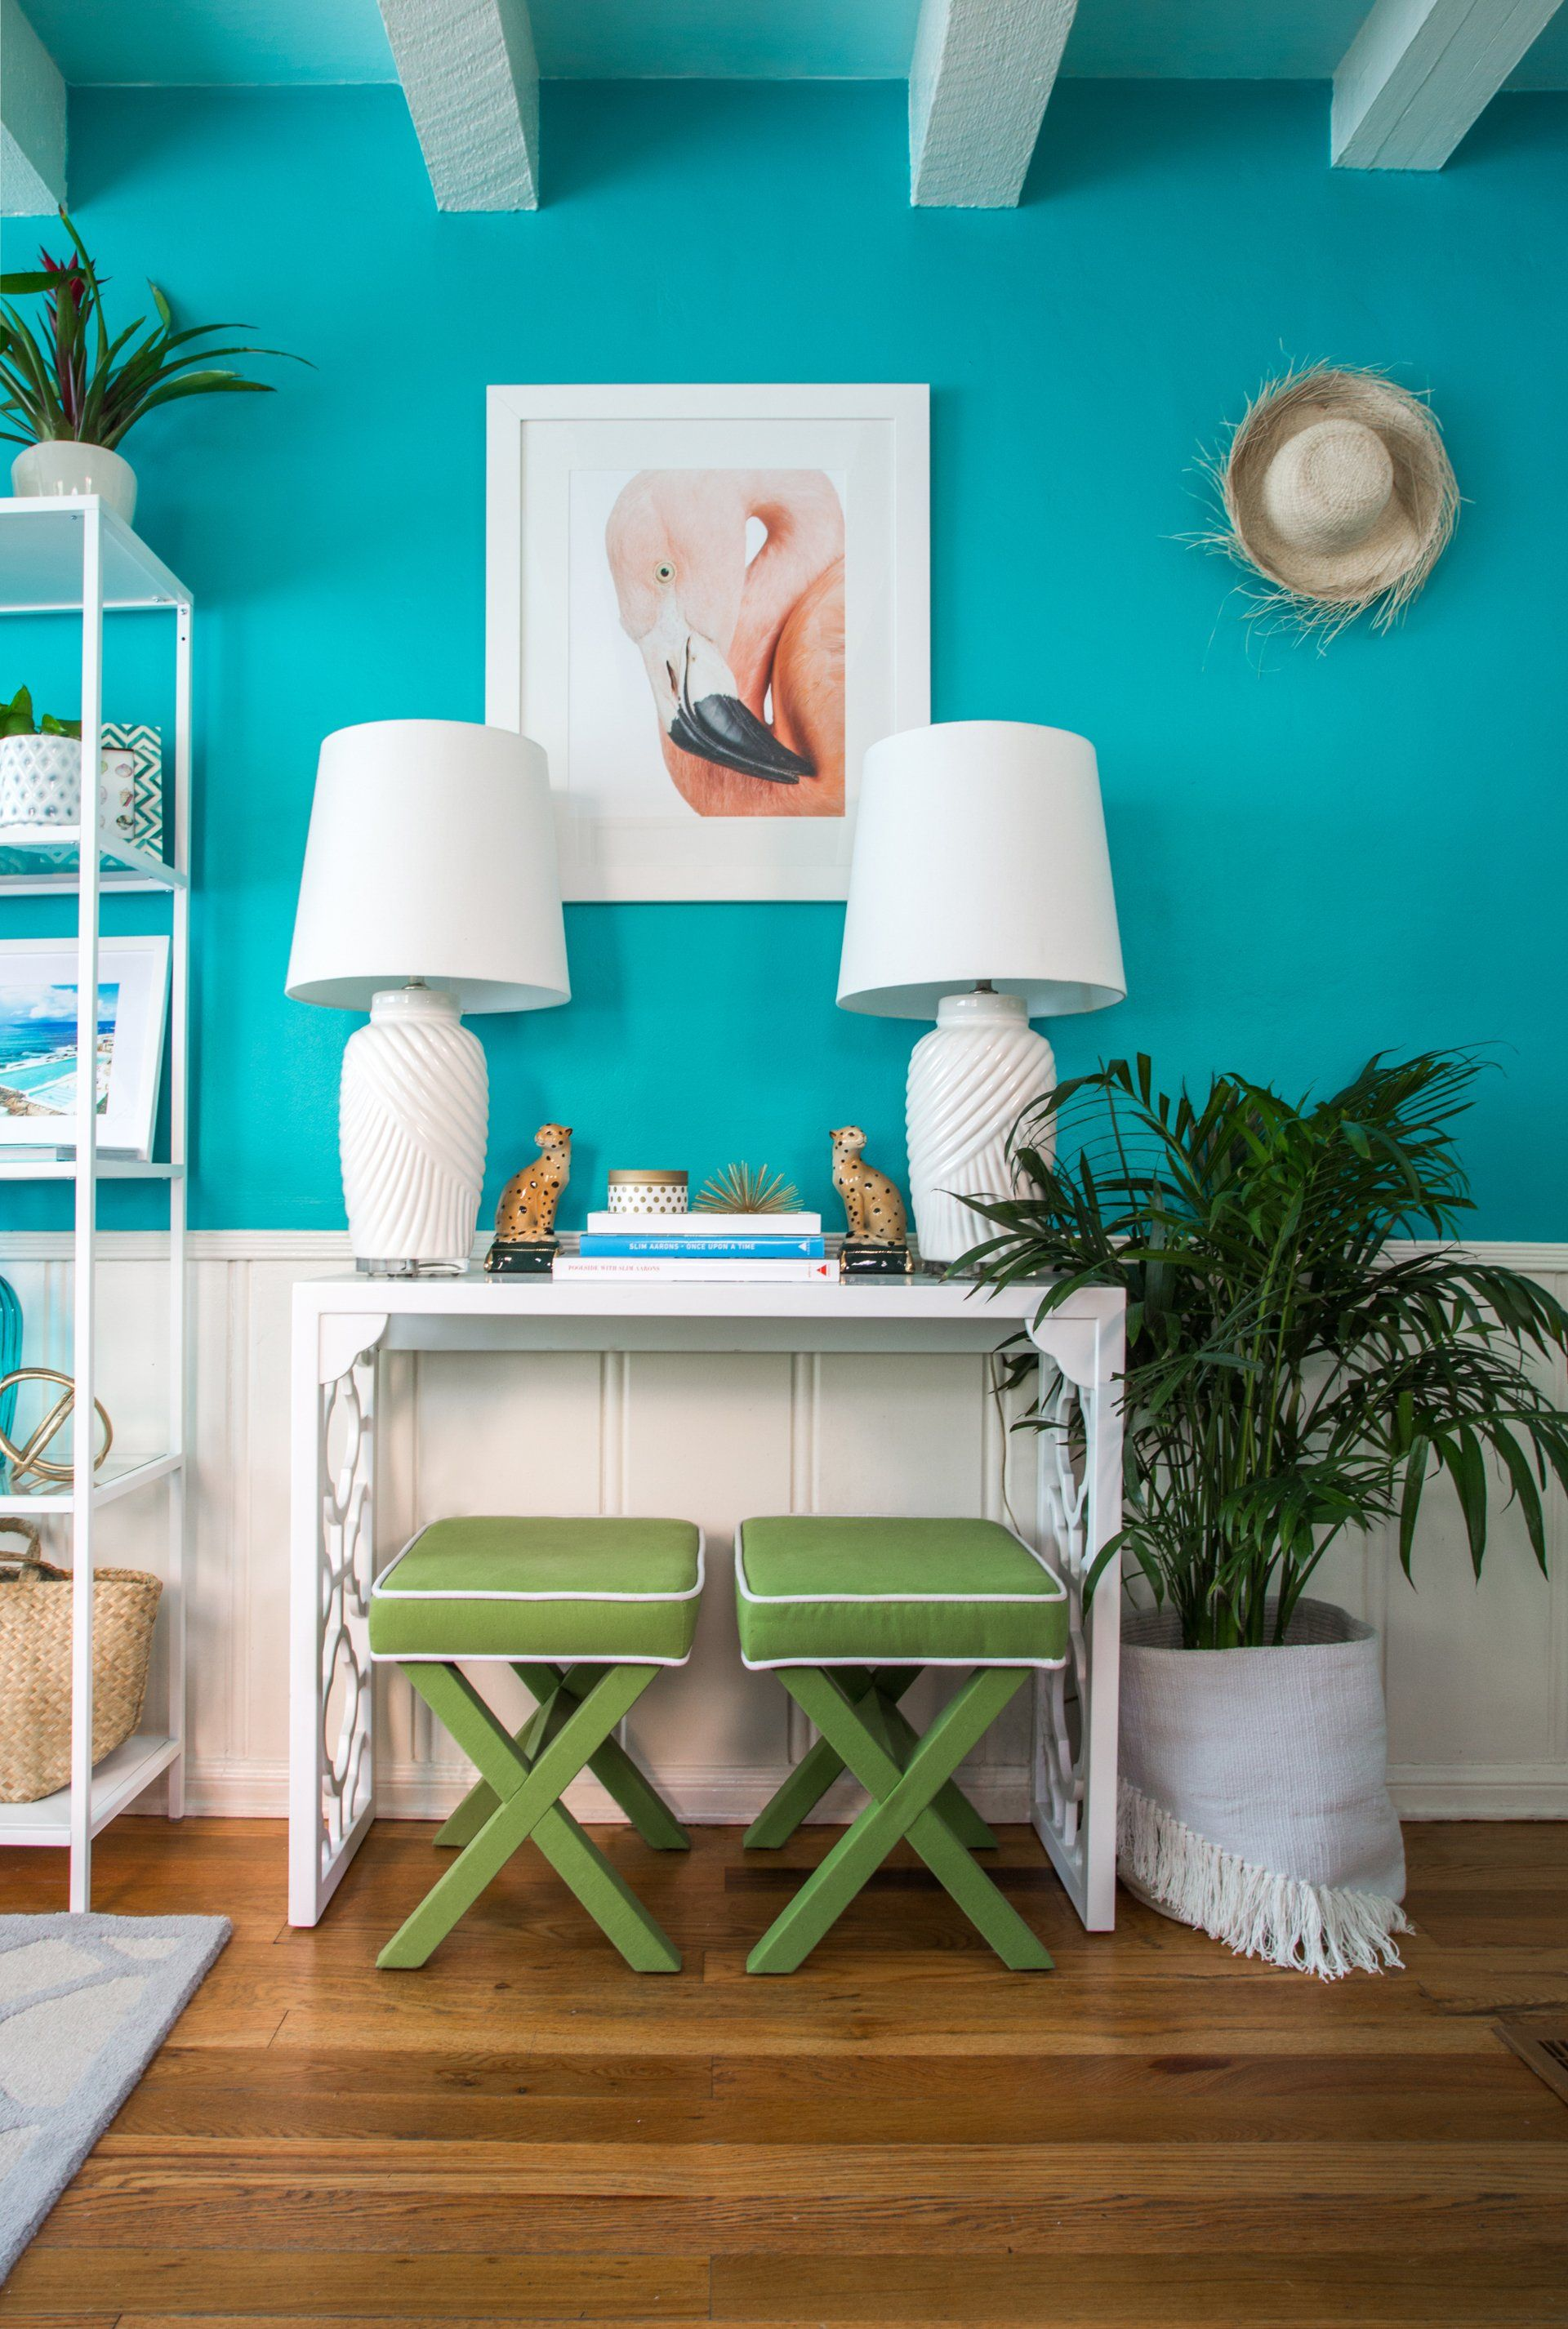 Paint colors that match this apartment therapy photo sw 7046 anonymous sw 6479 drizzle sw 9107 über umber sw 6941 nifty turquoise sw 7648 big chill